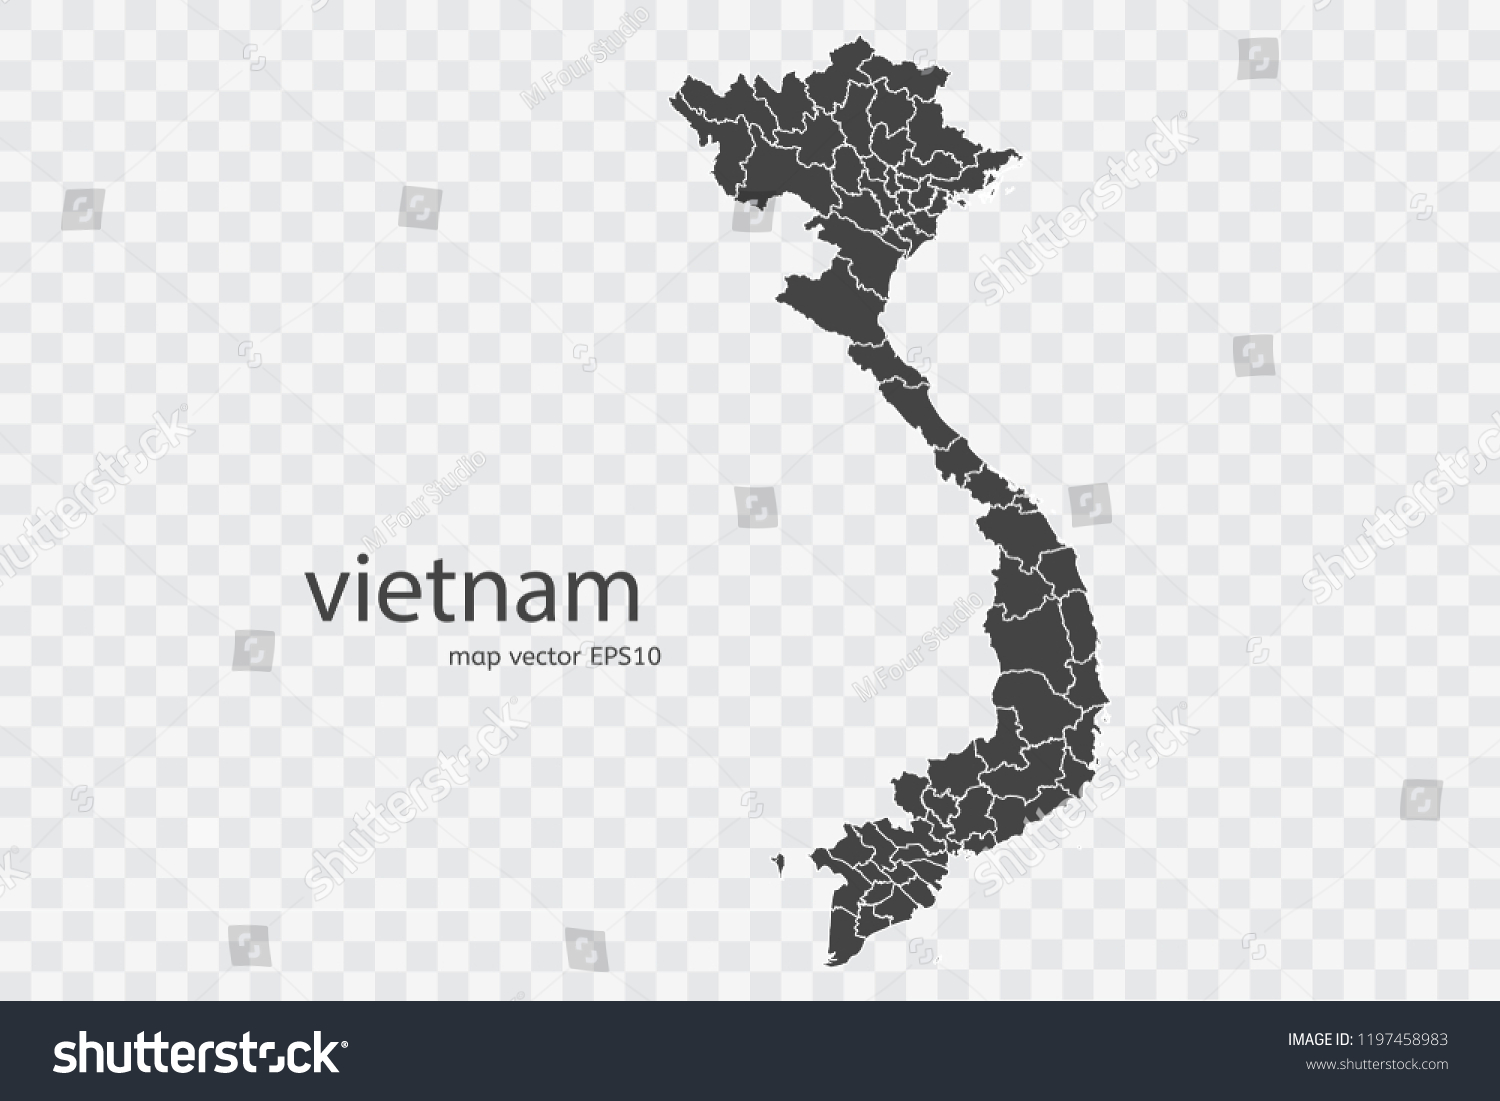 Vietnam Map Vector Isolated On Transparent Stock Vector Royalty Free 1197458983